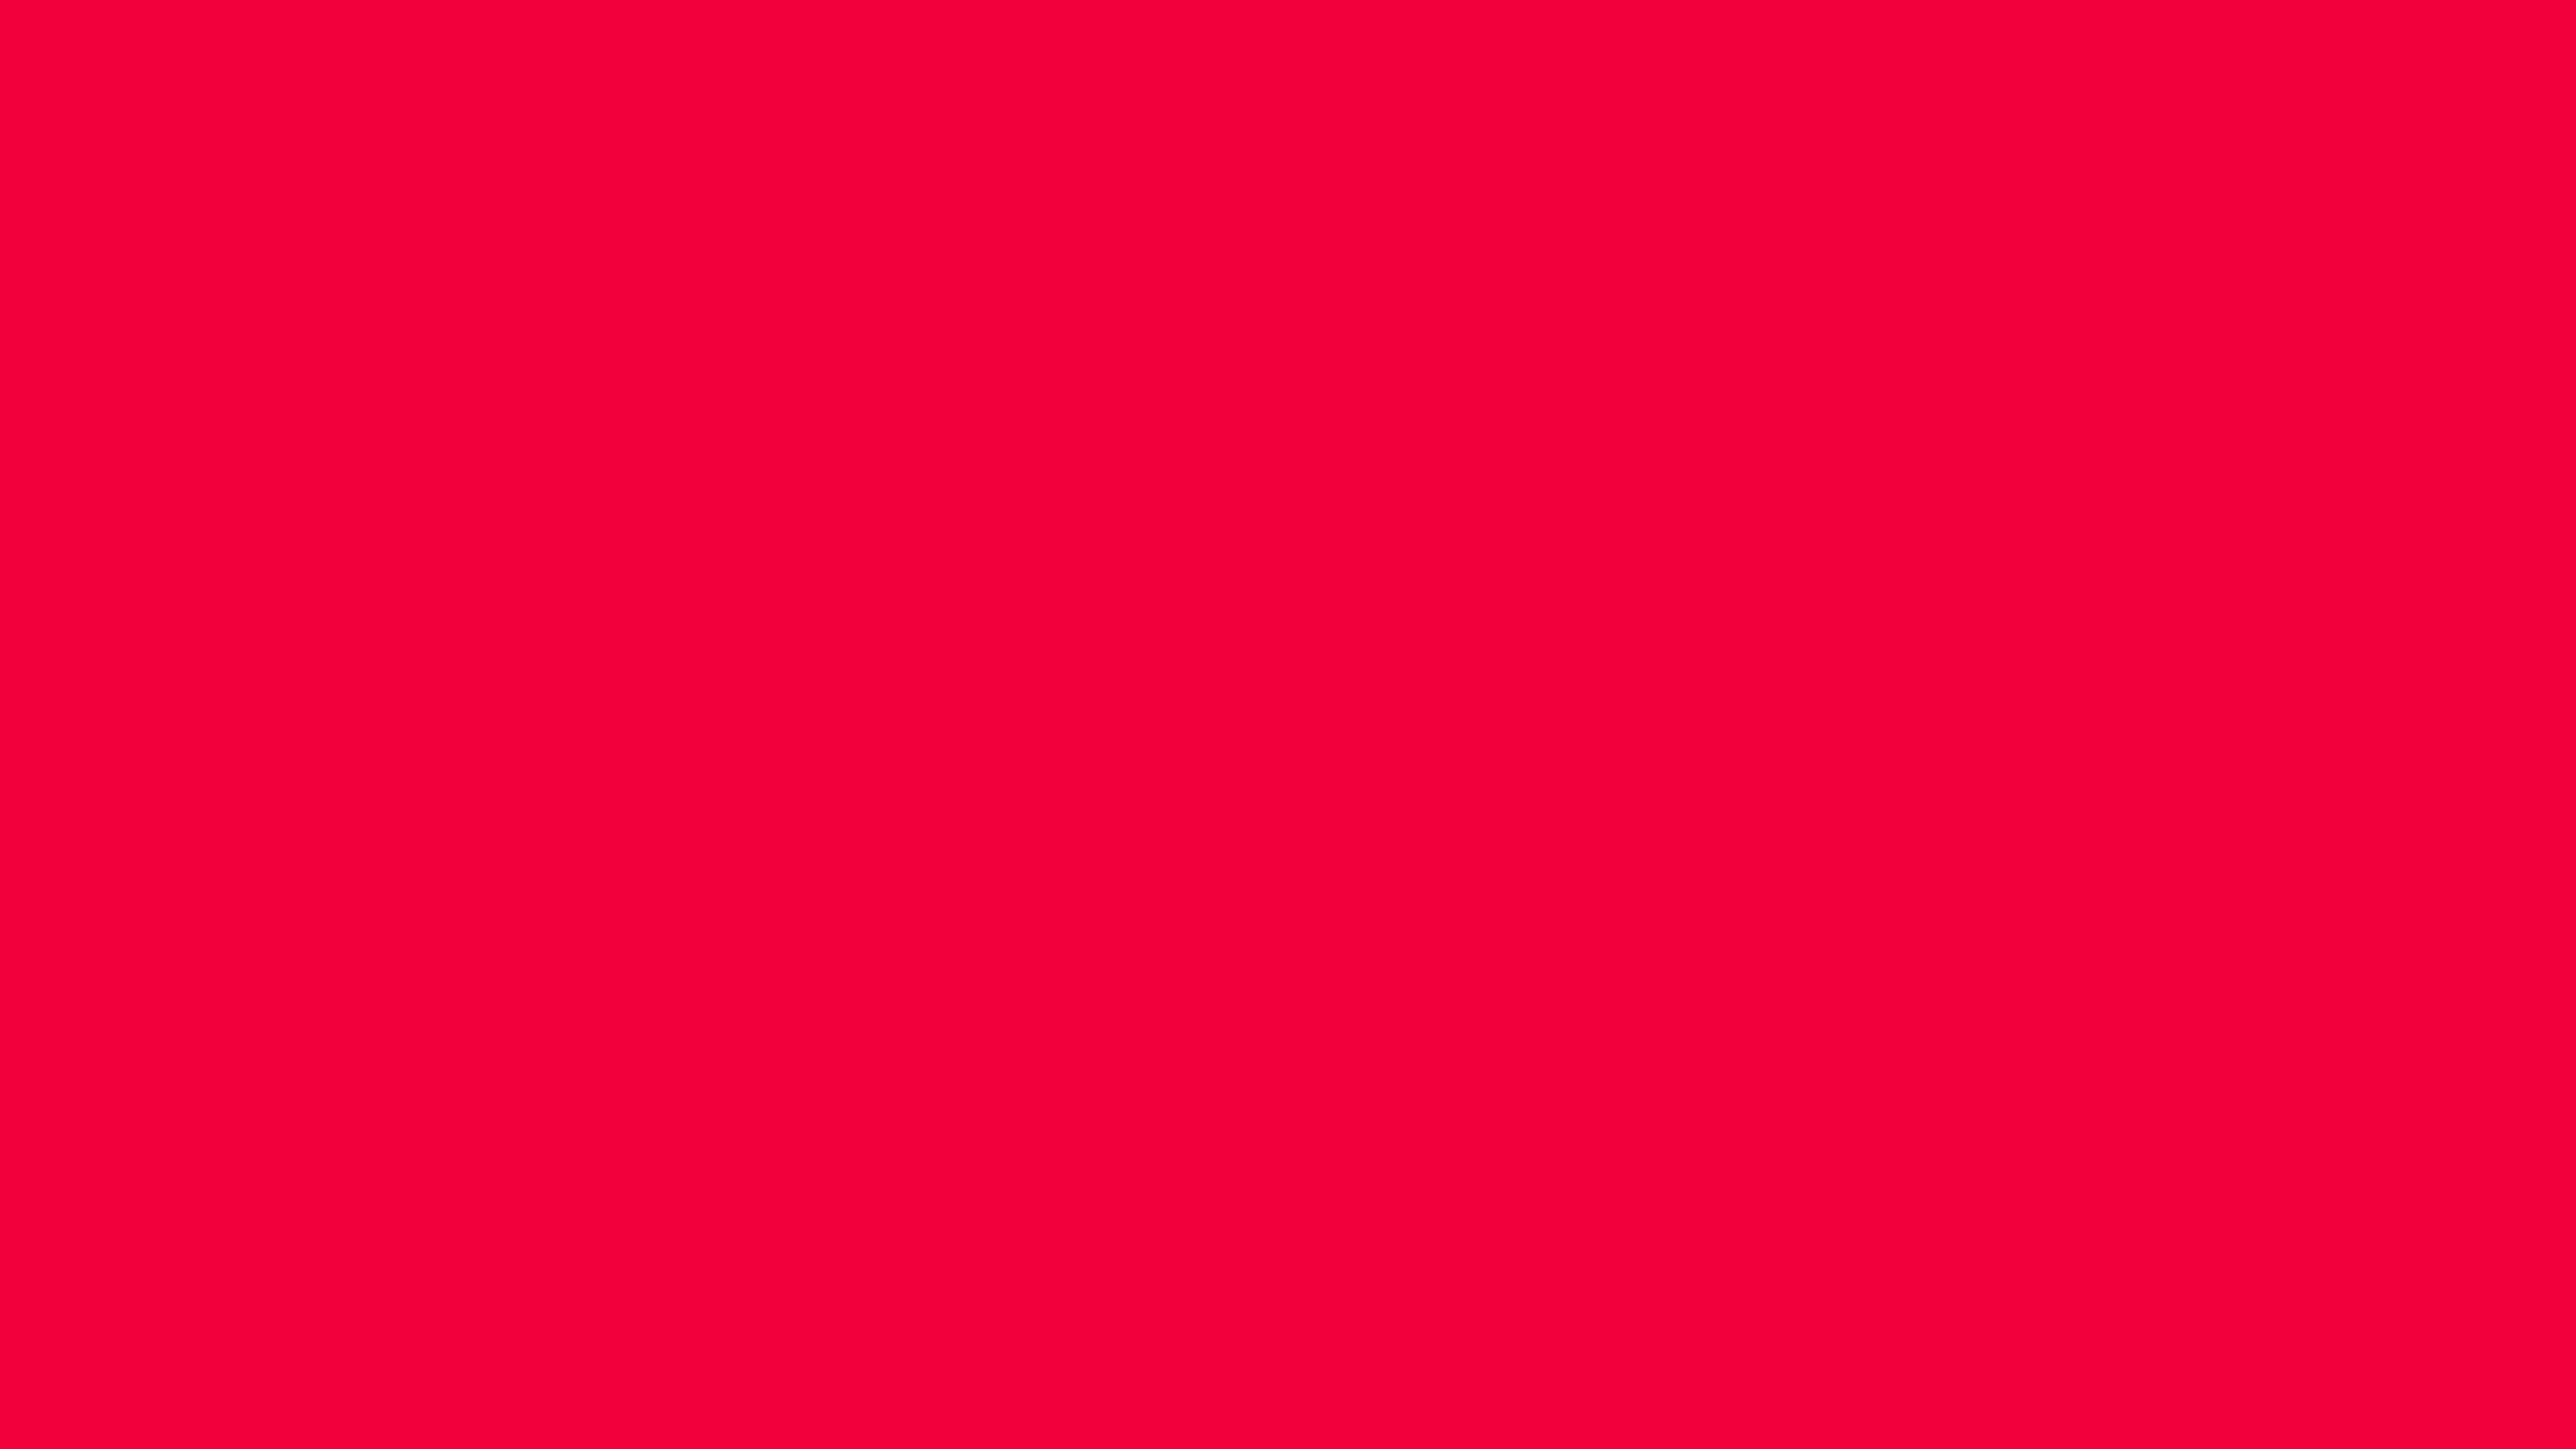 4096x2304 Red Munsell Solid Color Background